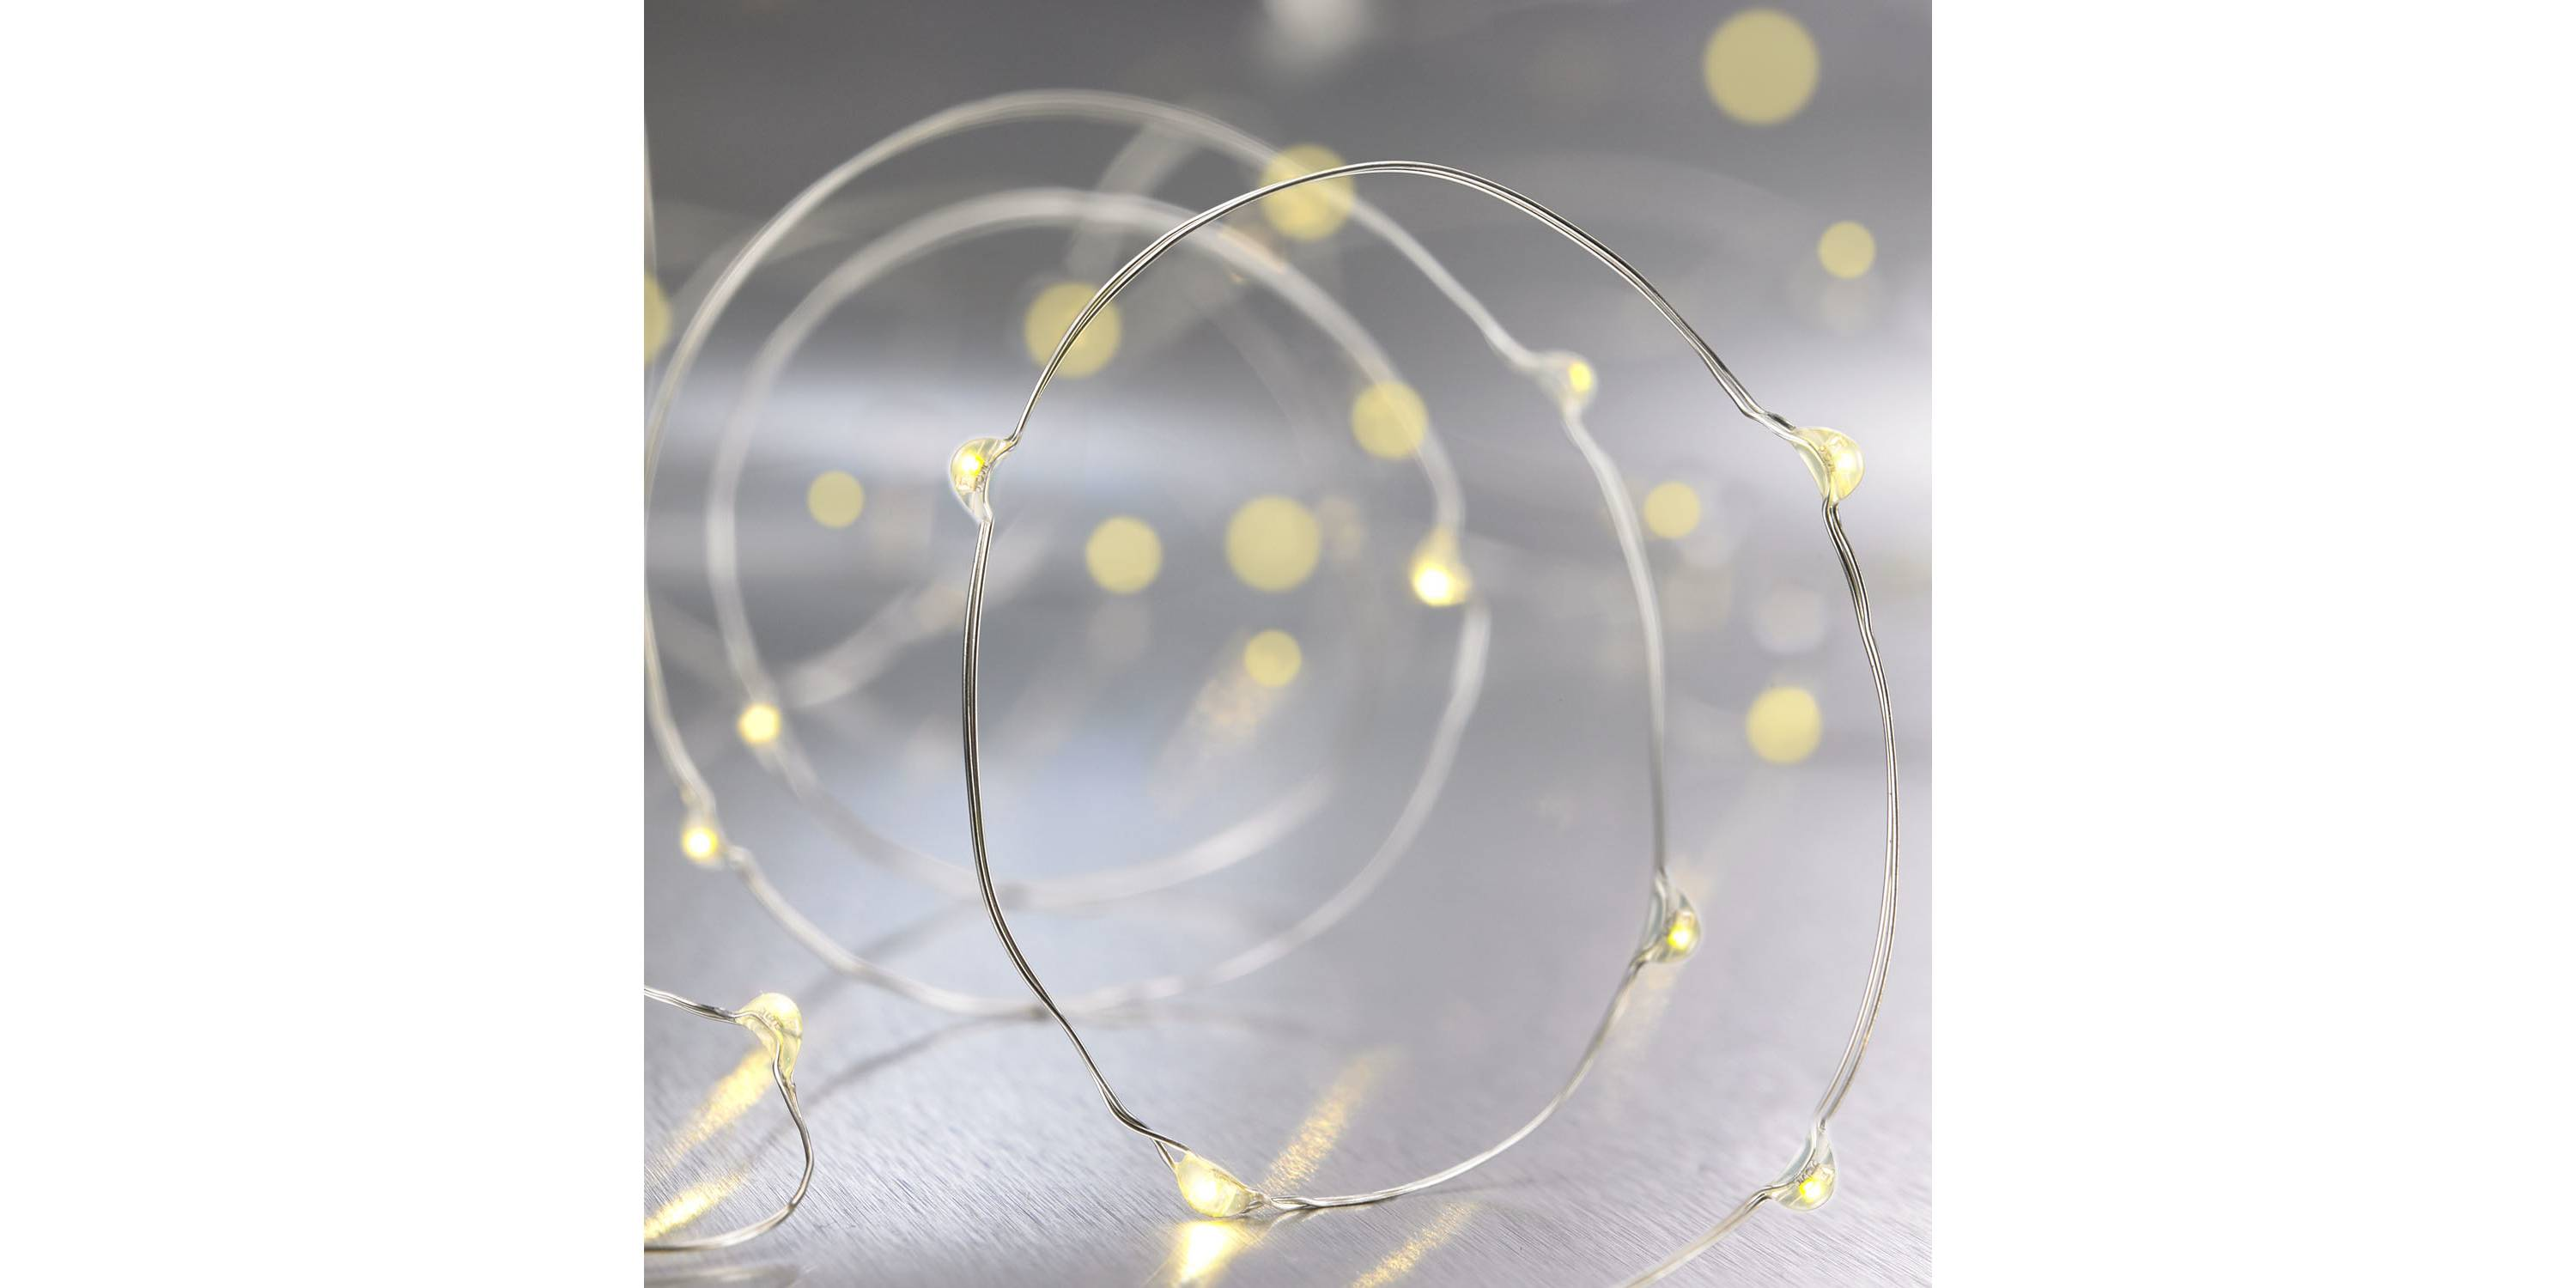 Fairy String Lights Target : Target holiday decorations based on your Myers-Briggs personality type